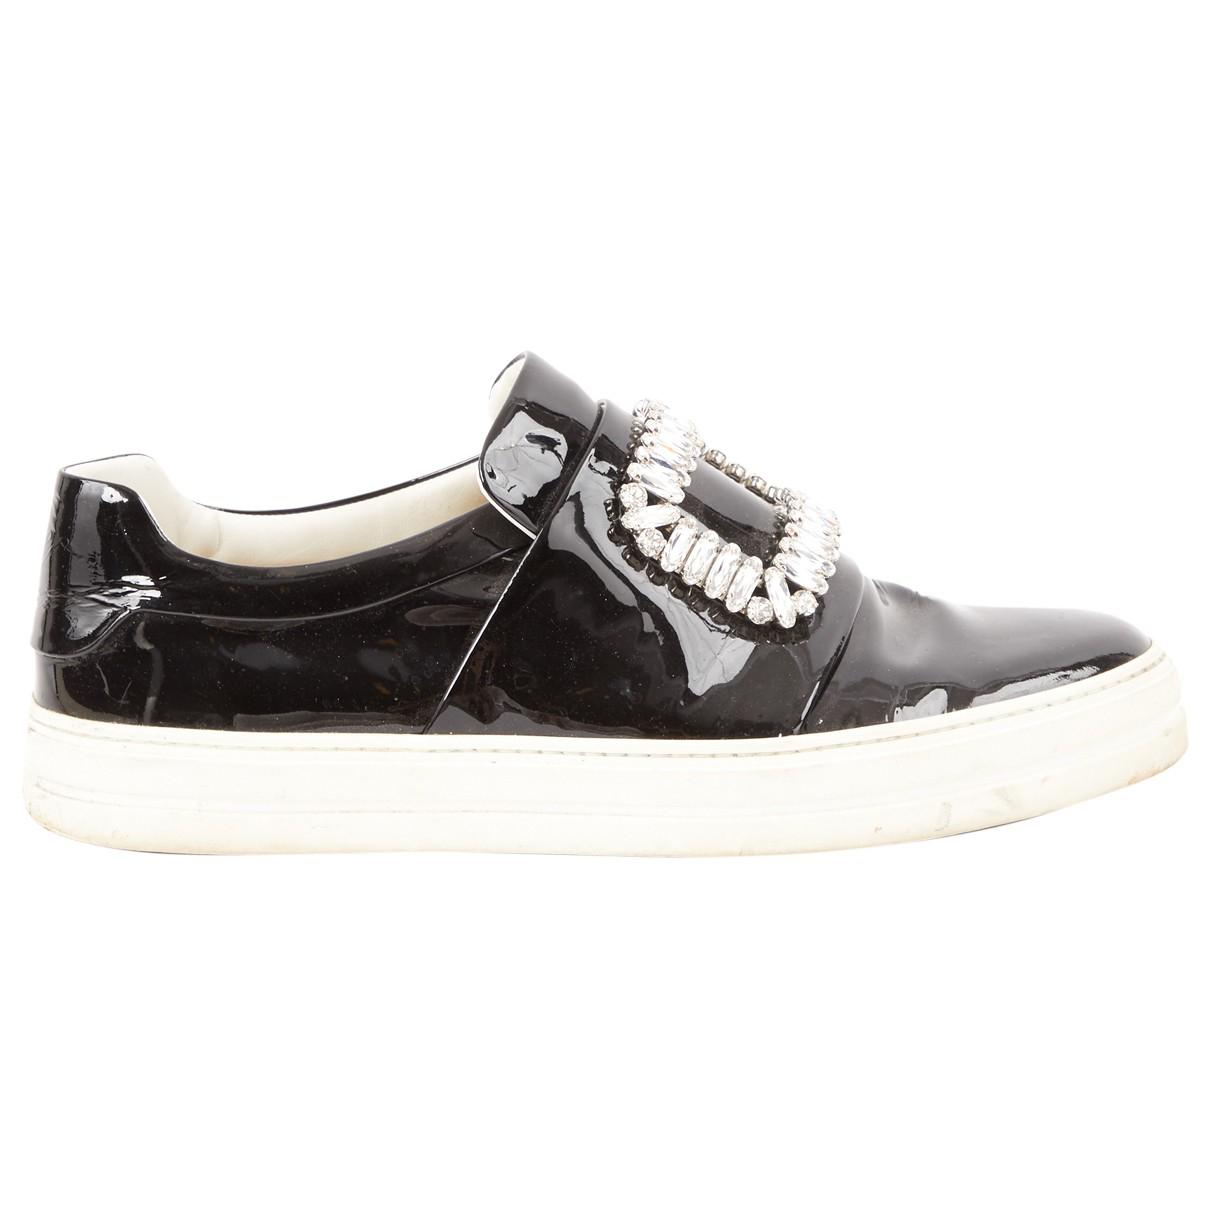 Roger VivierPatent Leather Low Trainers ecoWeryw